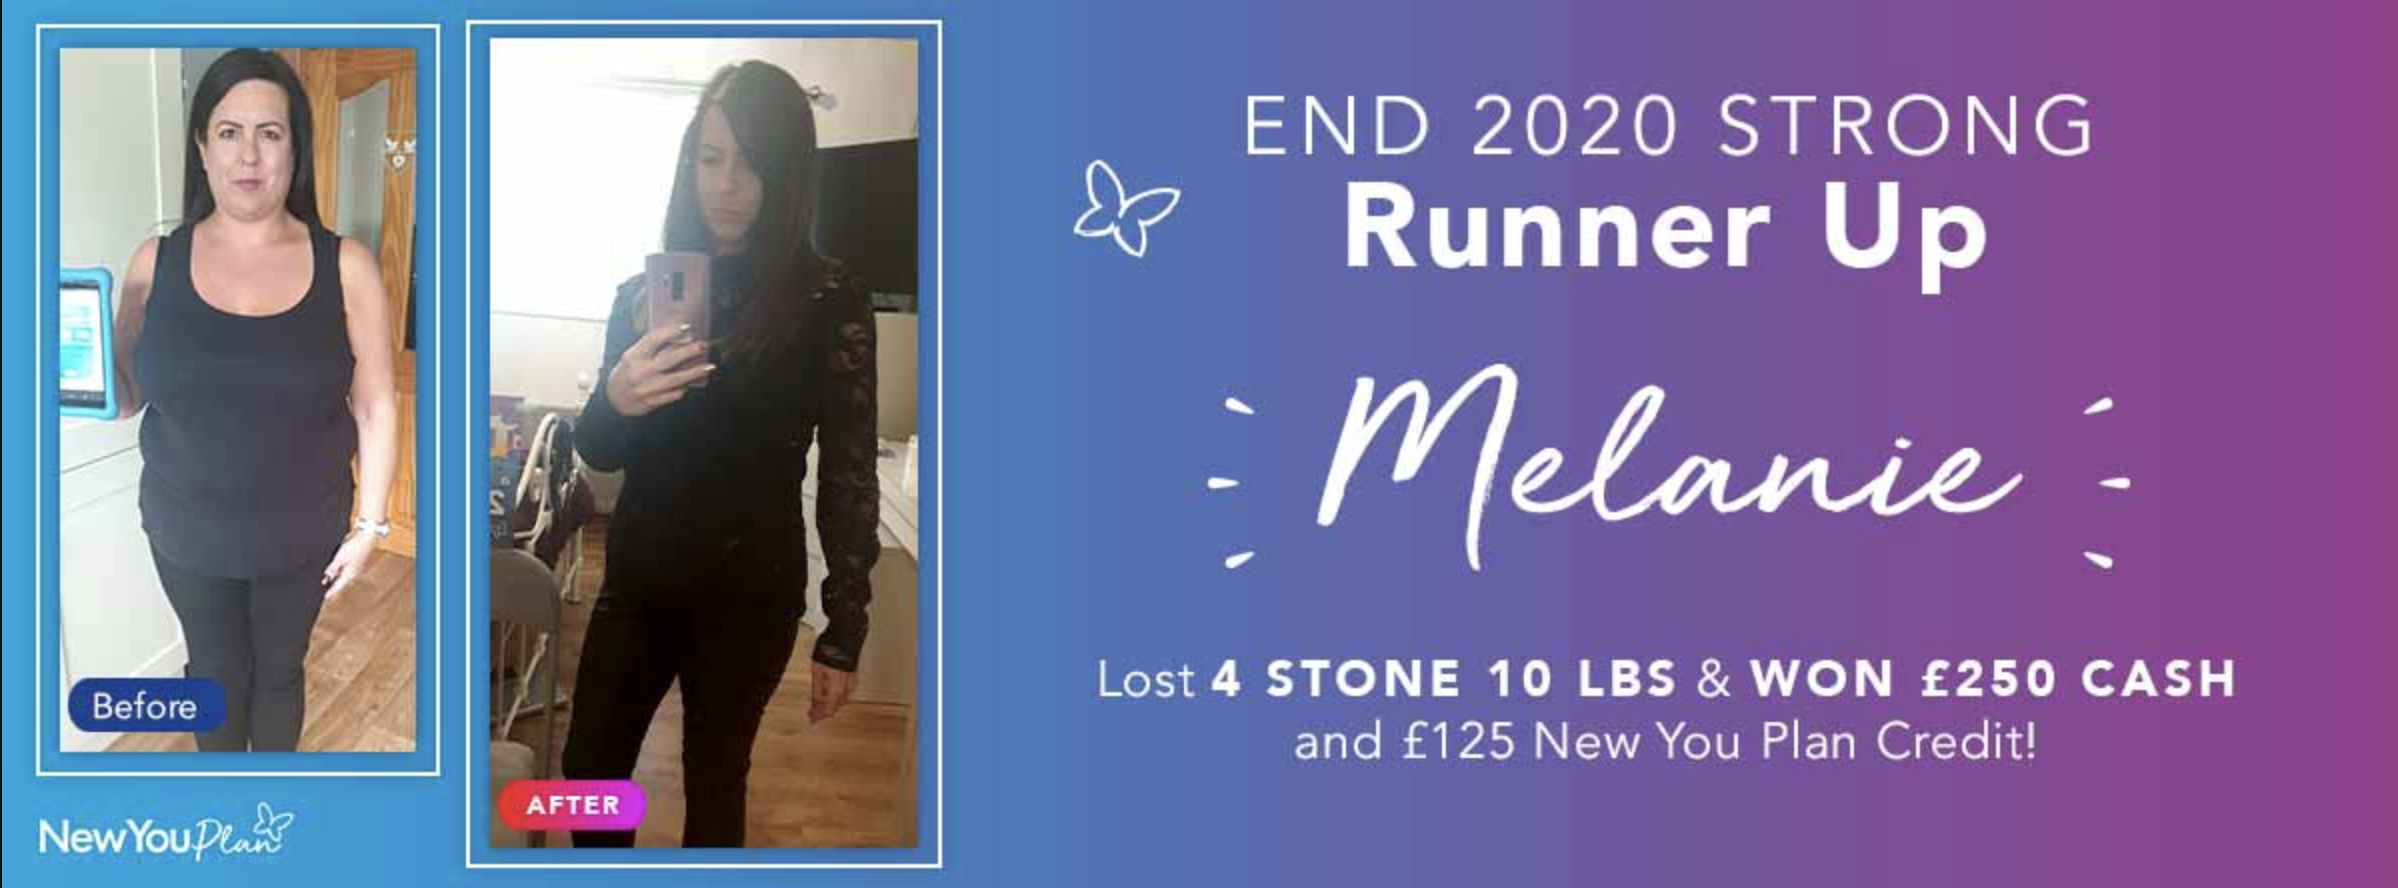 End 2020 Strong Challenge Runner-up Melanie shares how she lost four stone and 10 lbs with the New You Plan